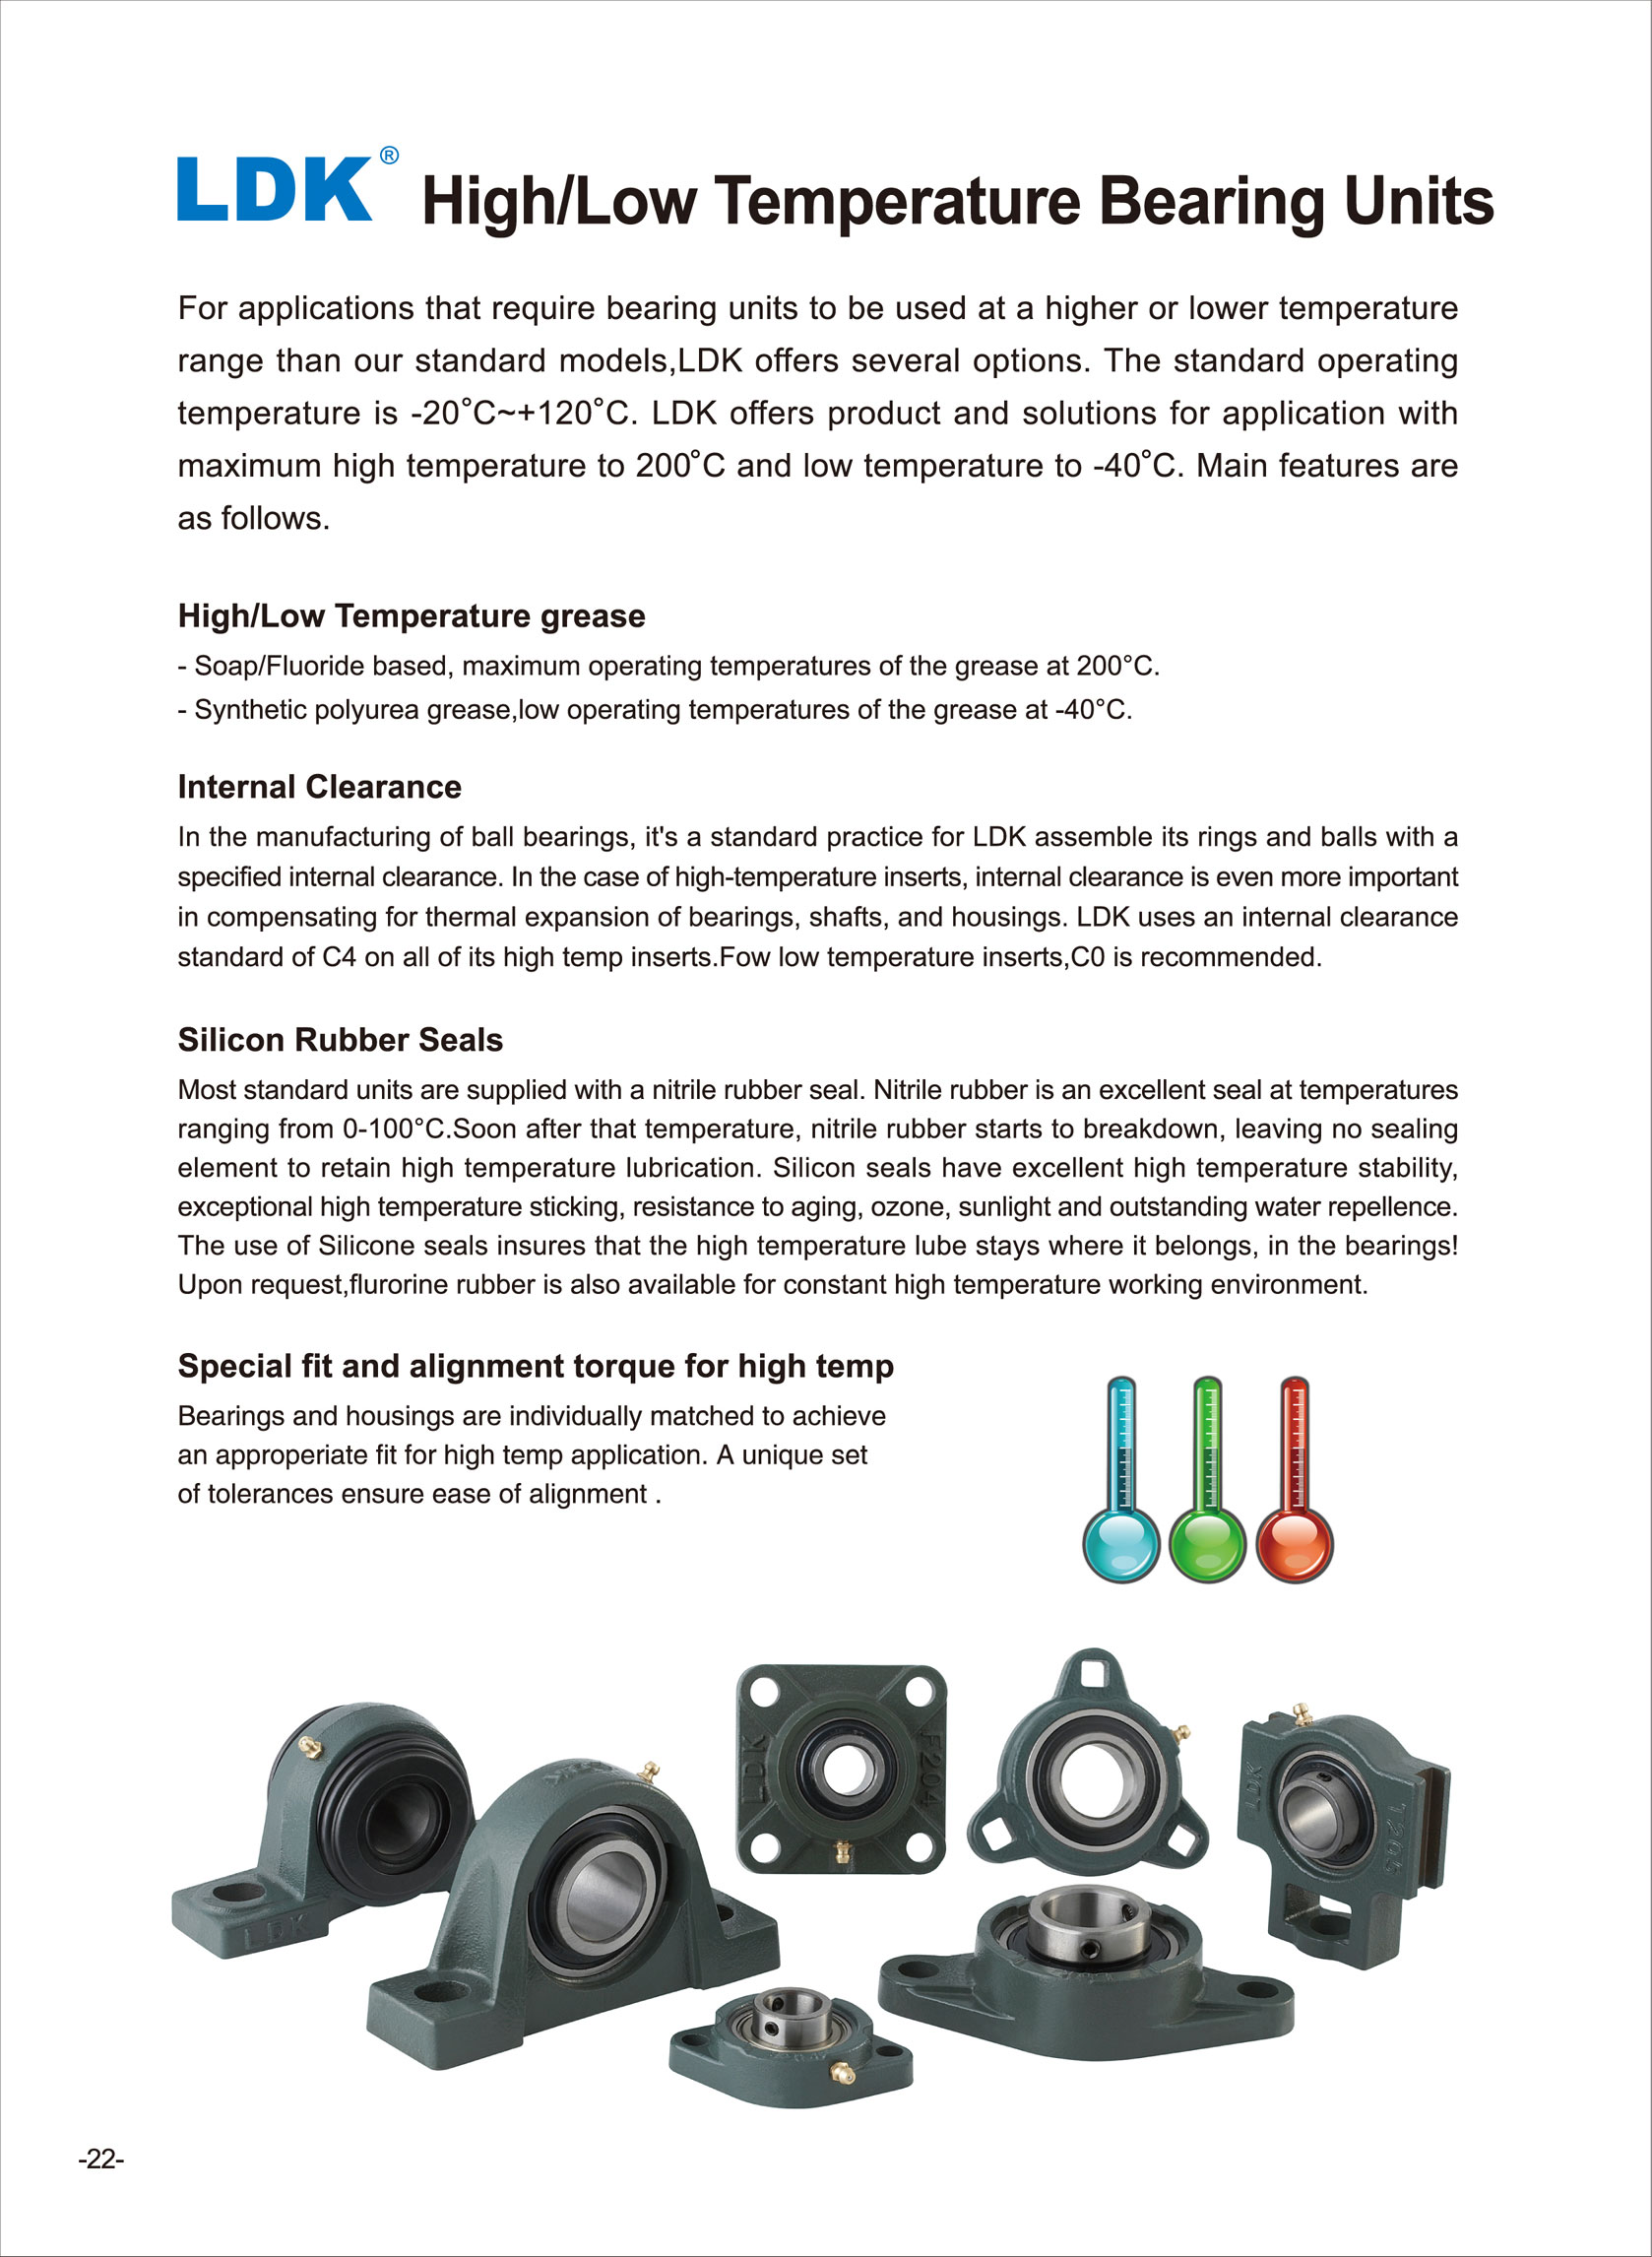 High/Low Tempertature Bearing